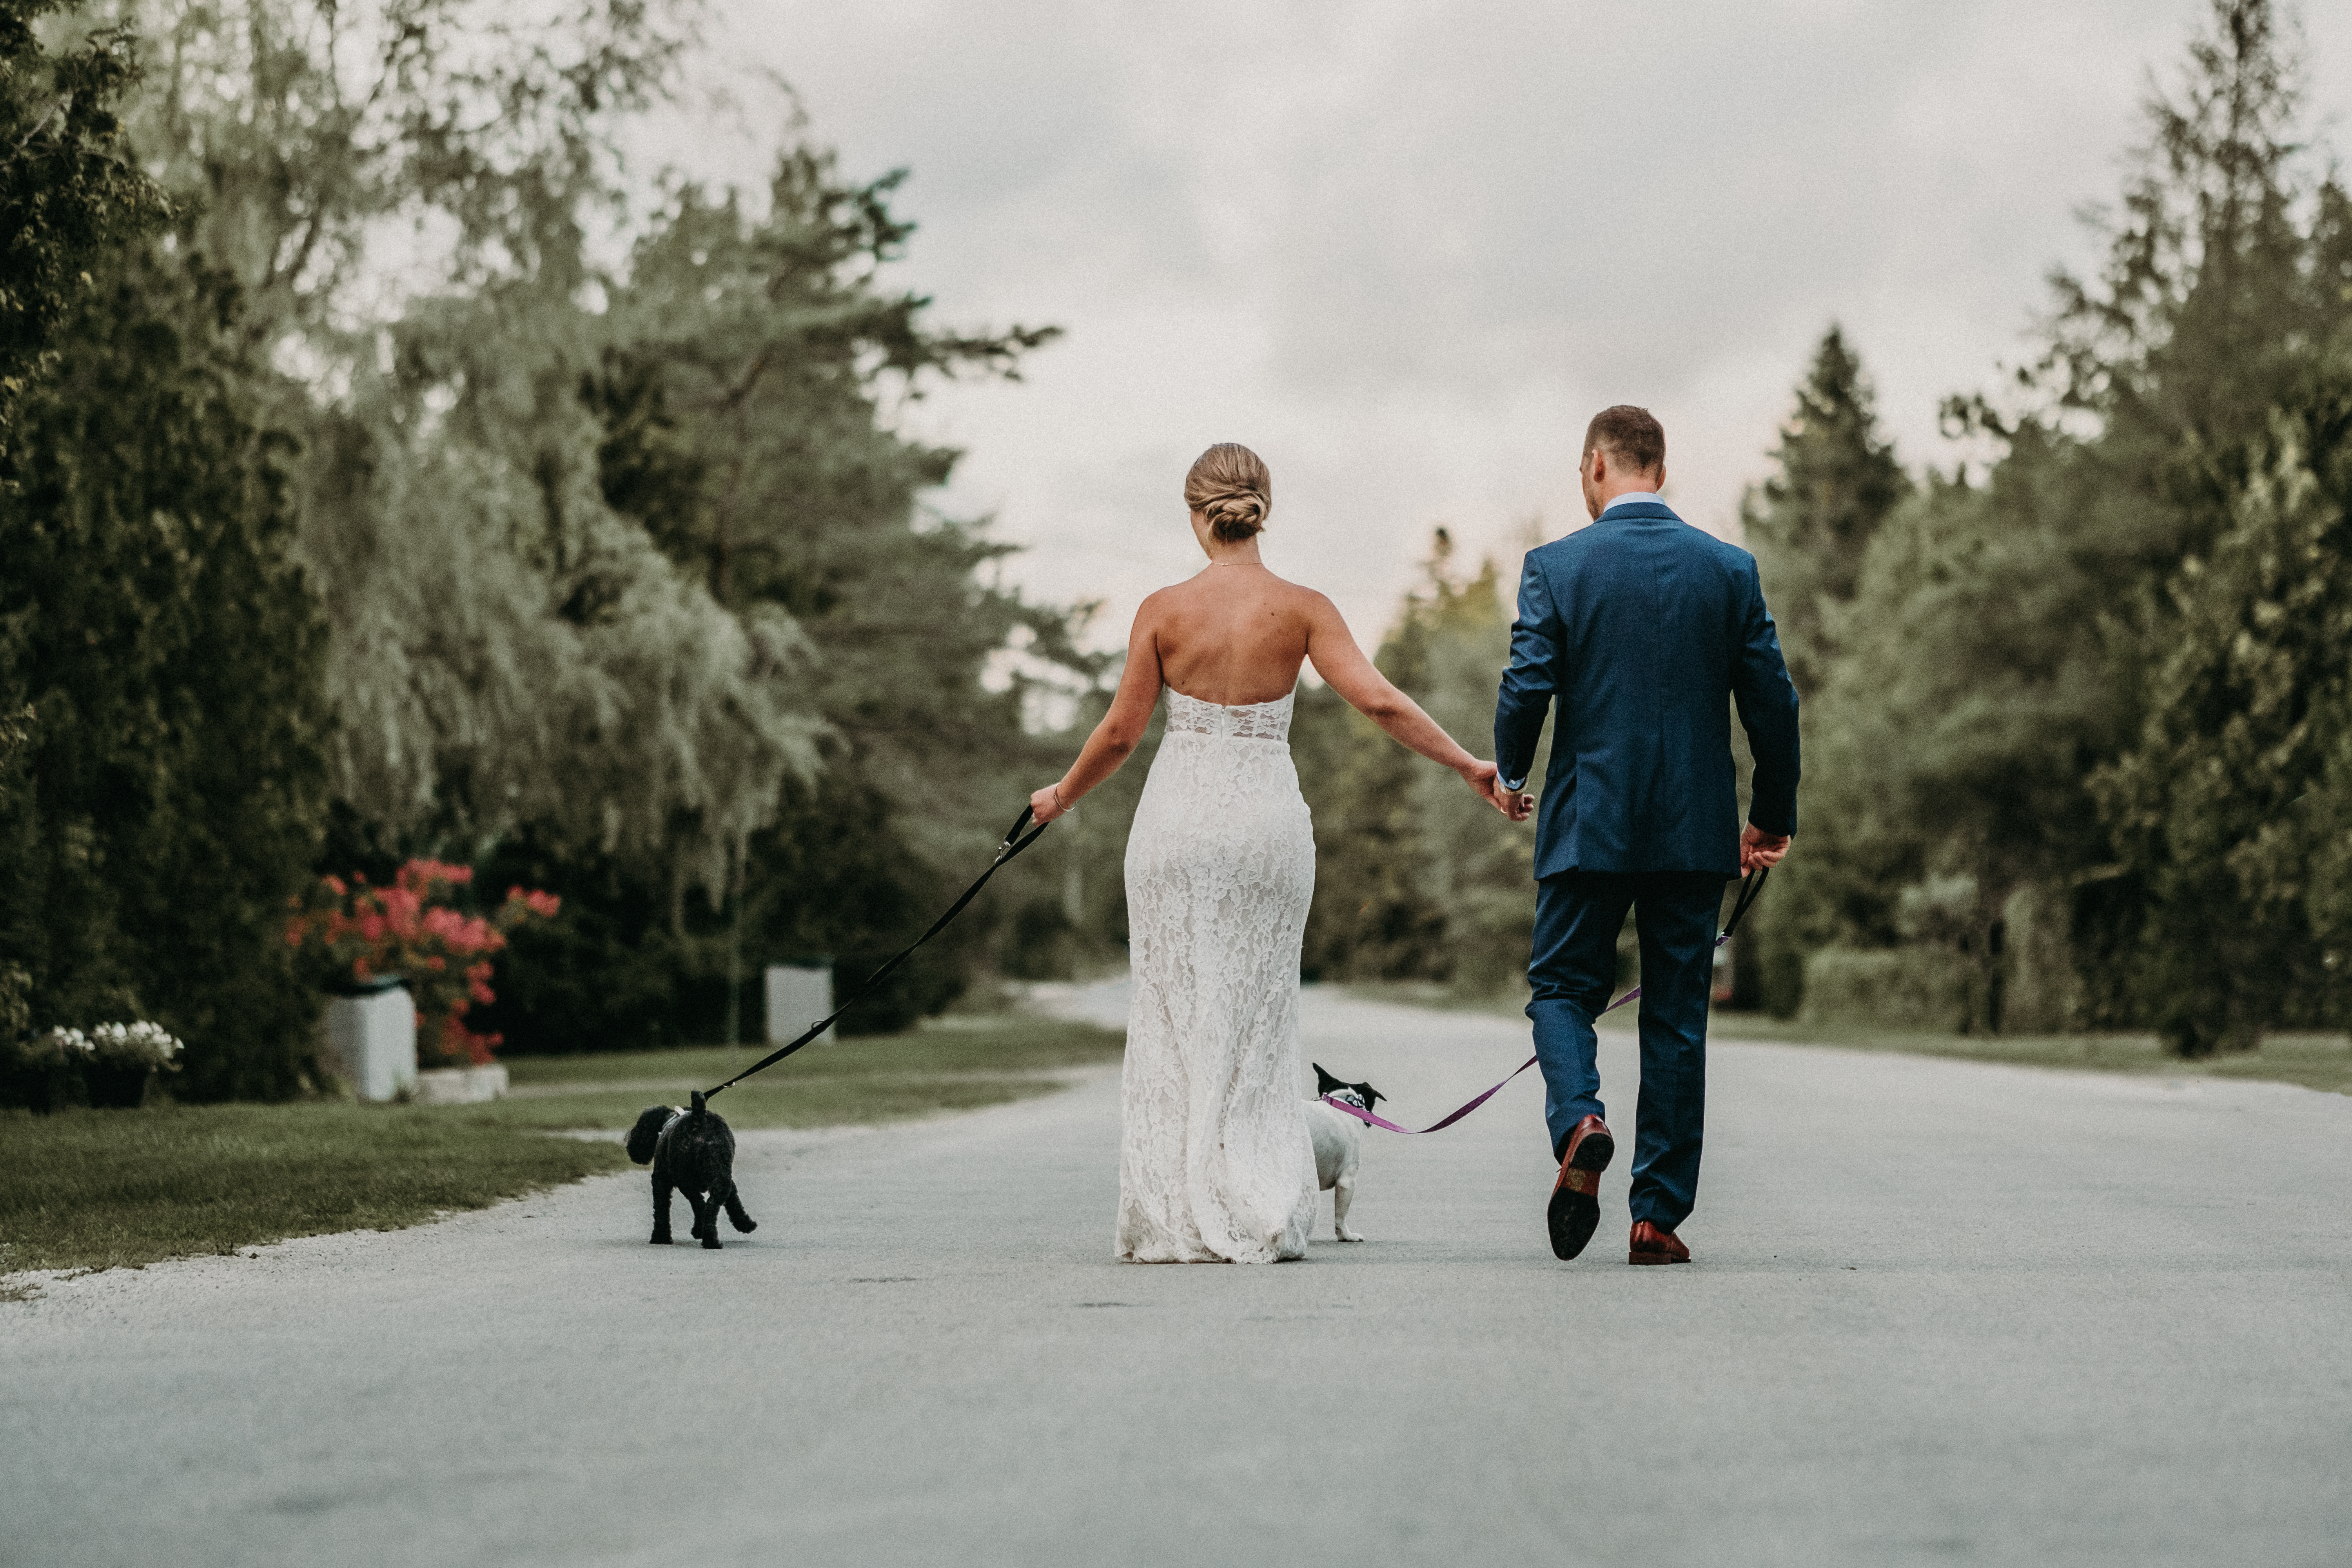 sauble beach backyard wedding ceremony bride and groom vows just married ontario rwalking dogs family of four